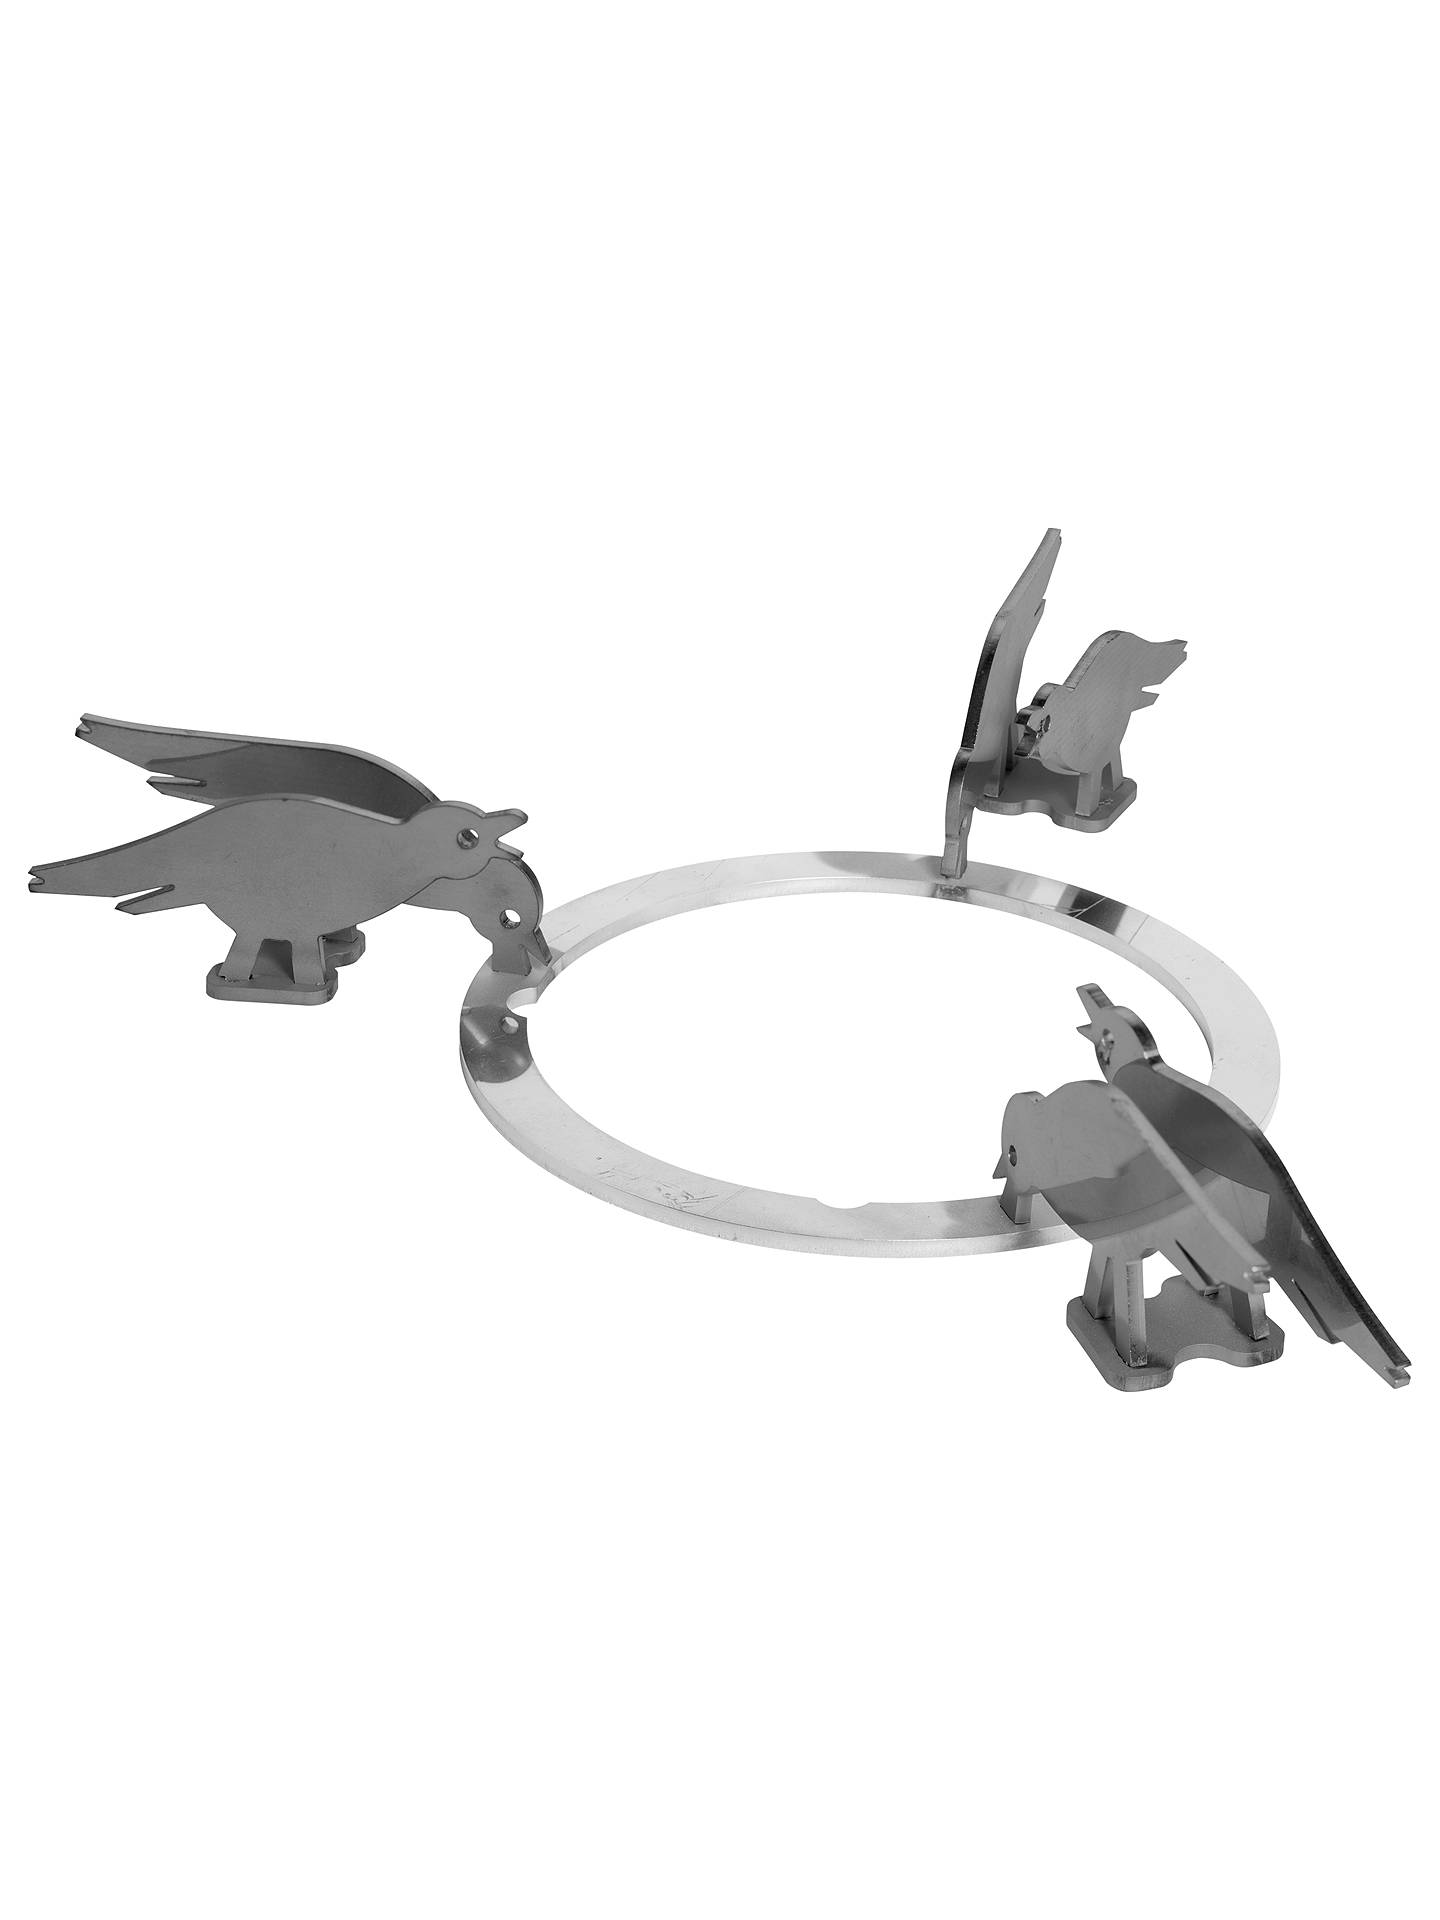 BuySmeg KPDSN60B Dolce Stil Novo Bird Design Pan Stand Kit Online at johnlewis.com